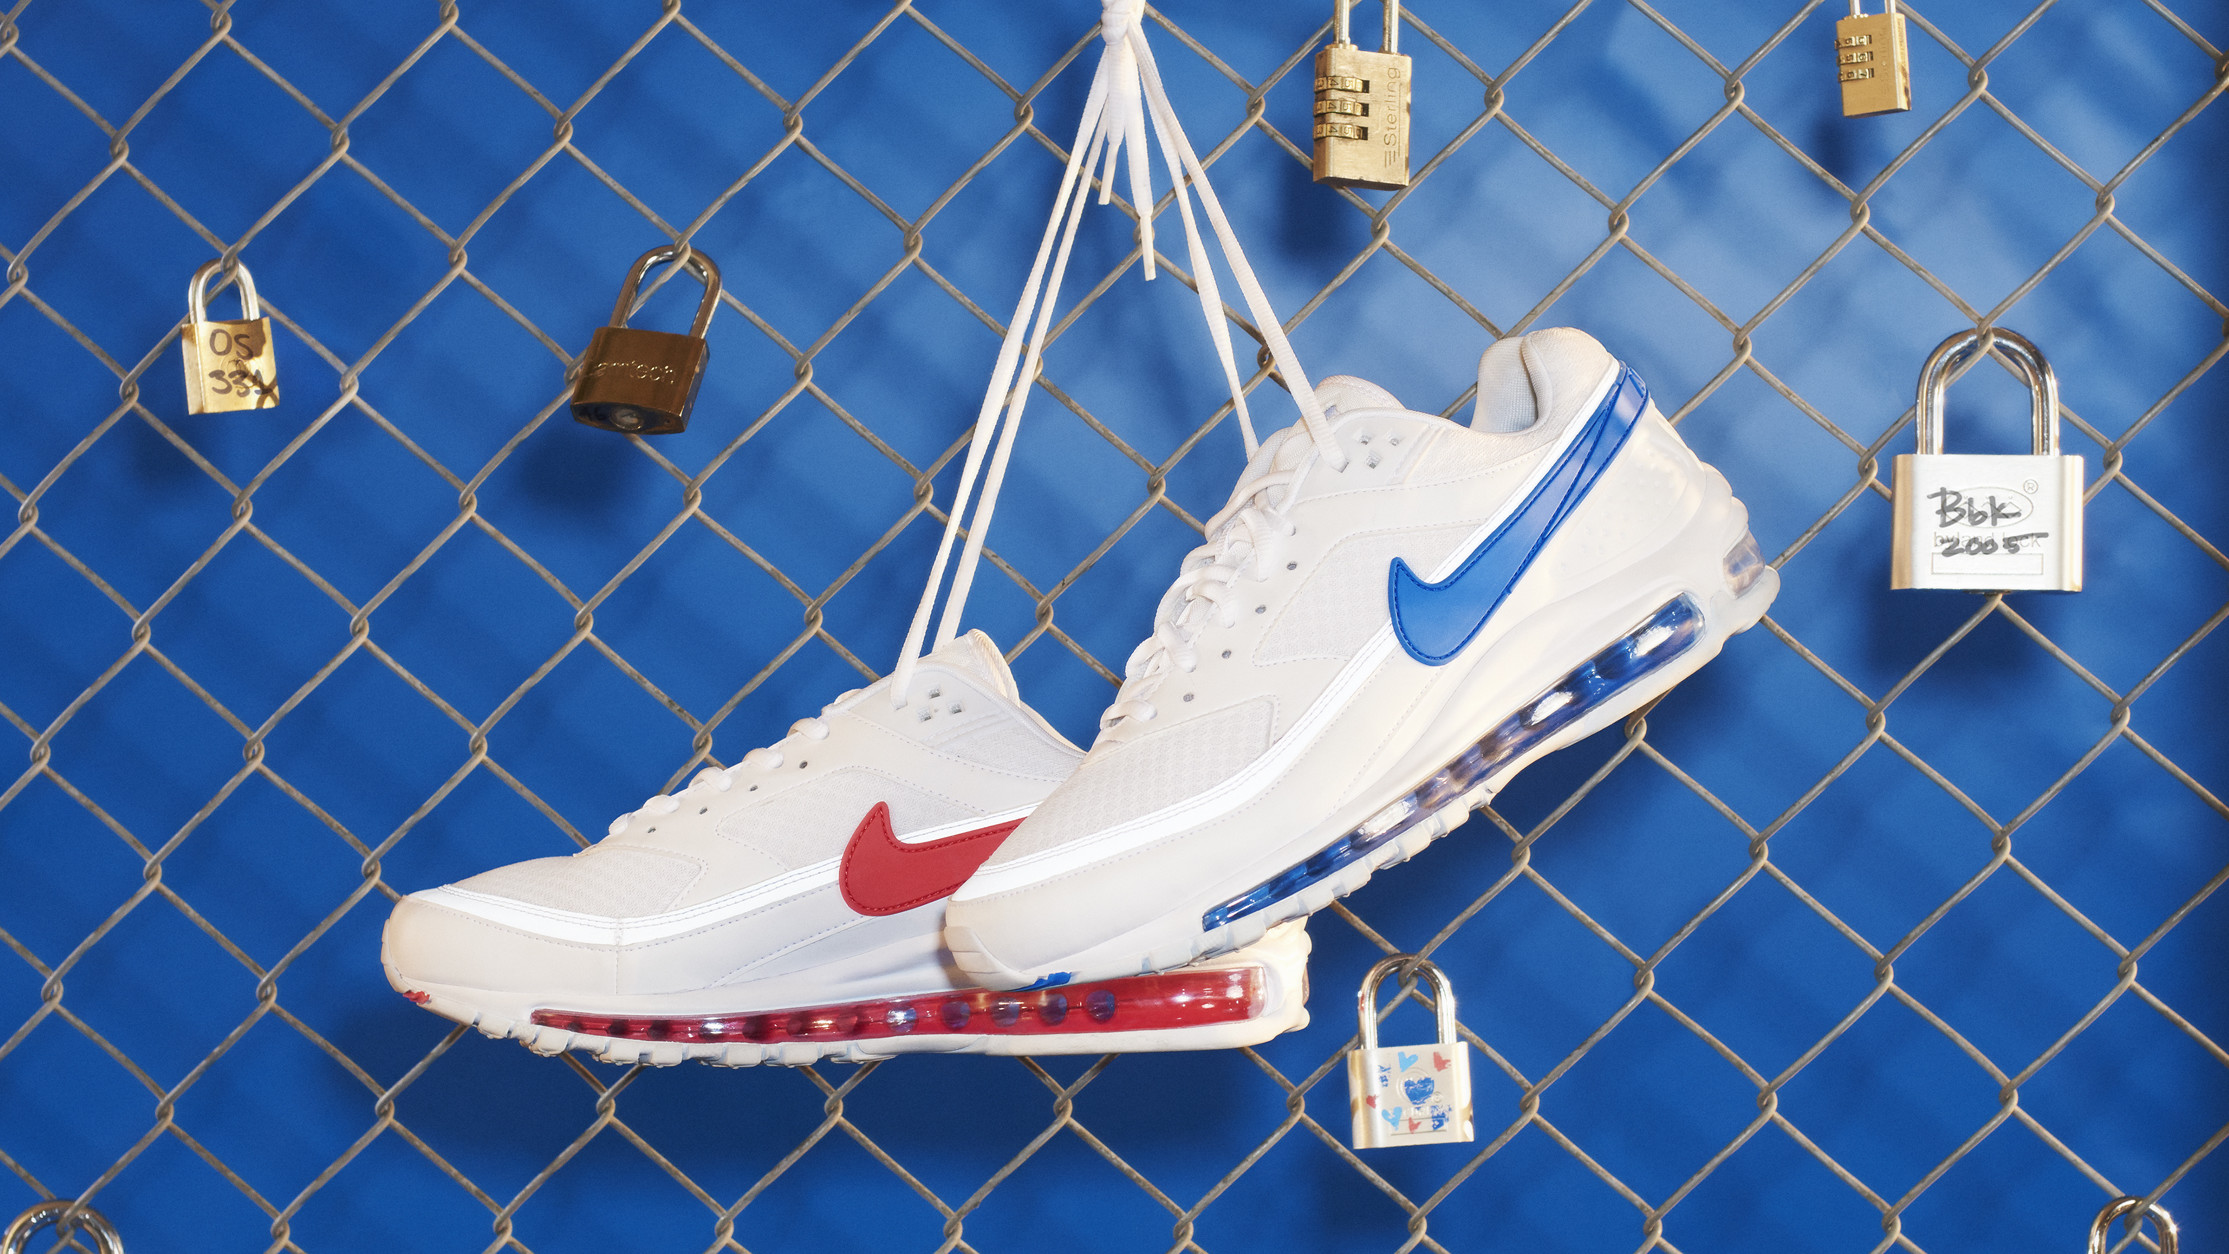 How to Get the Skepta x Nike Air Max BW 97 SK AO2113-100 | Sole ...